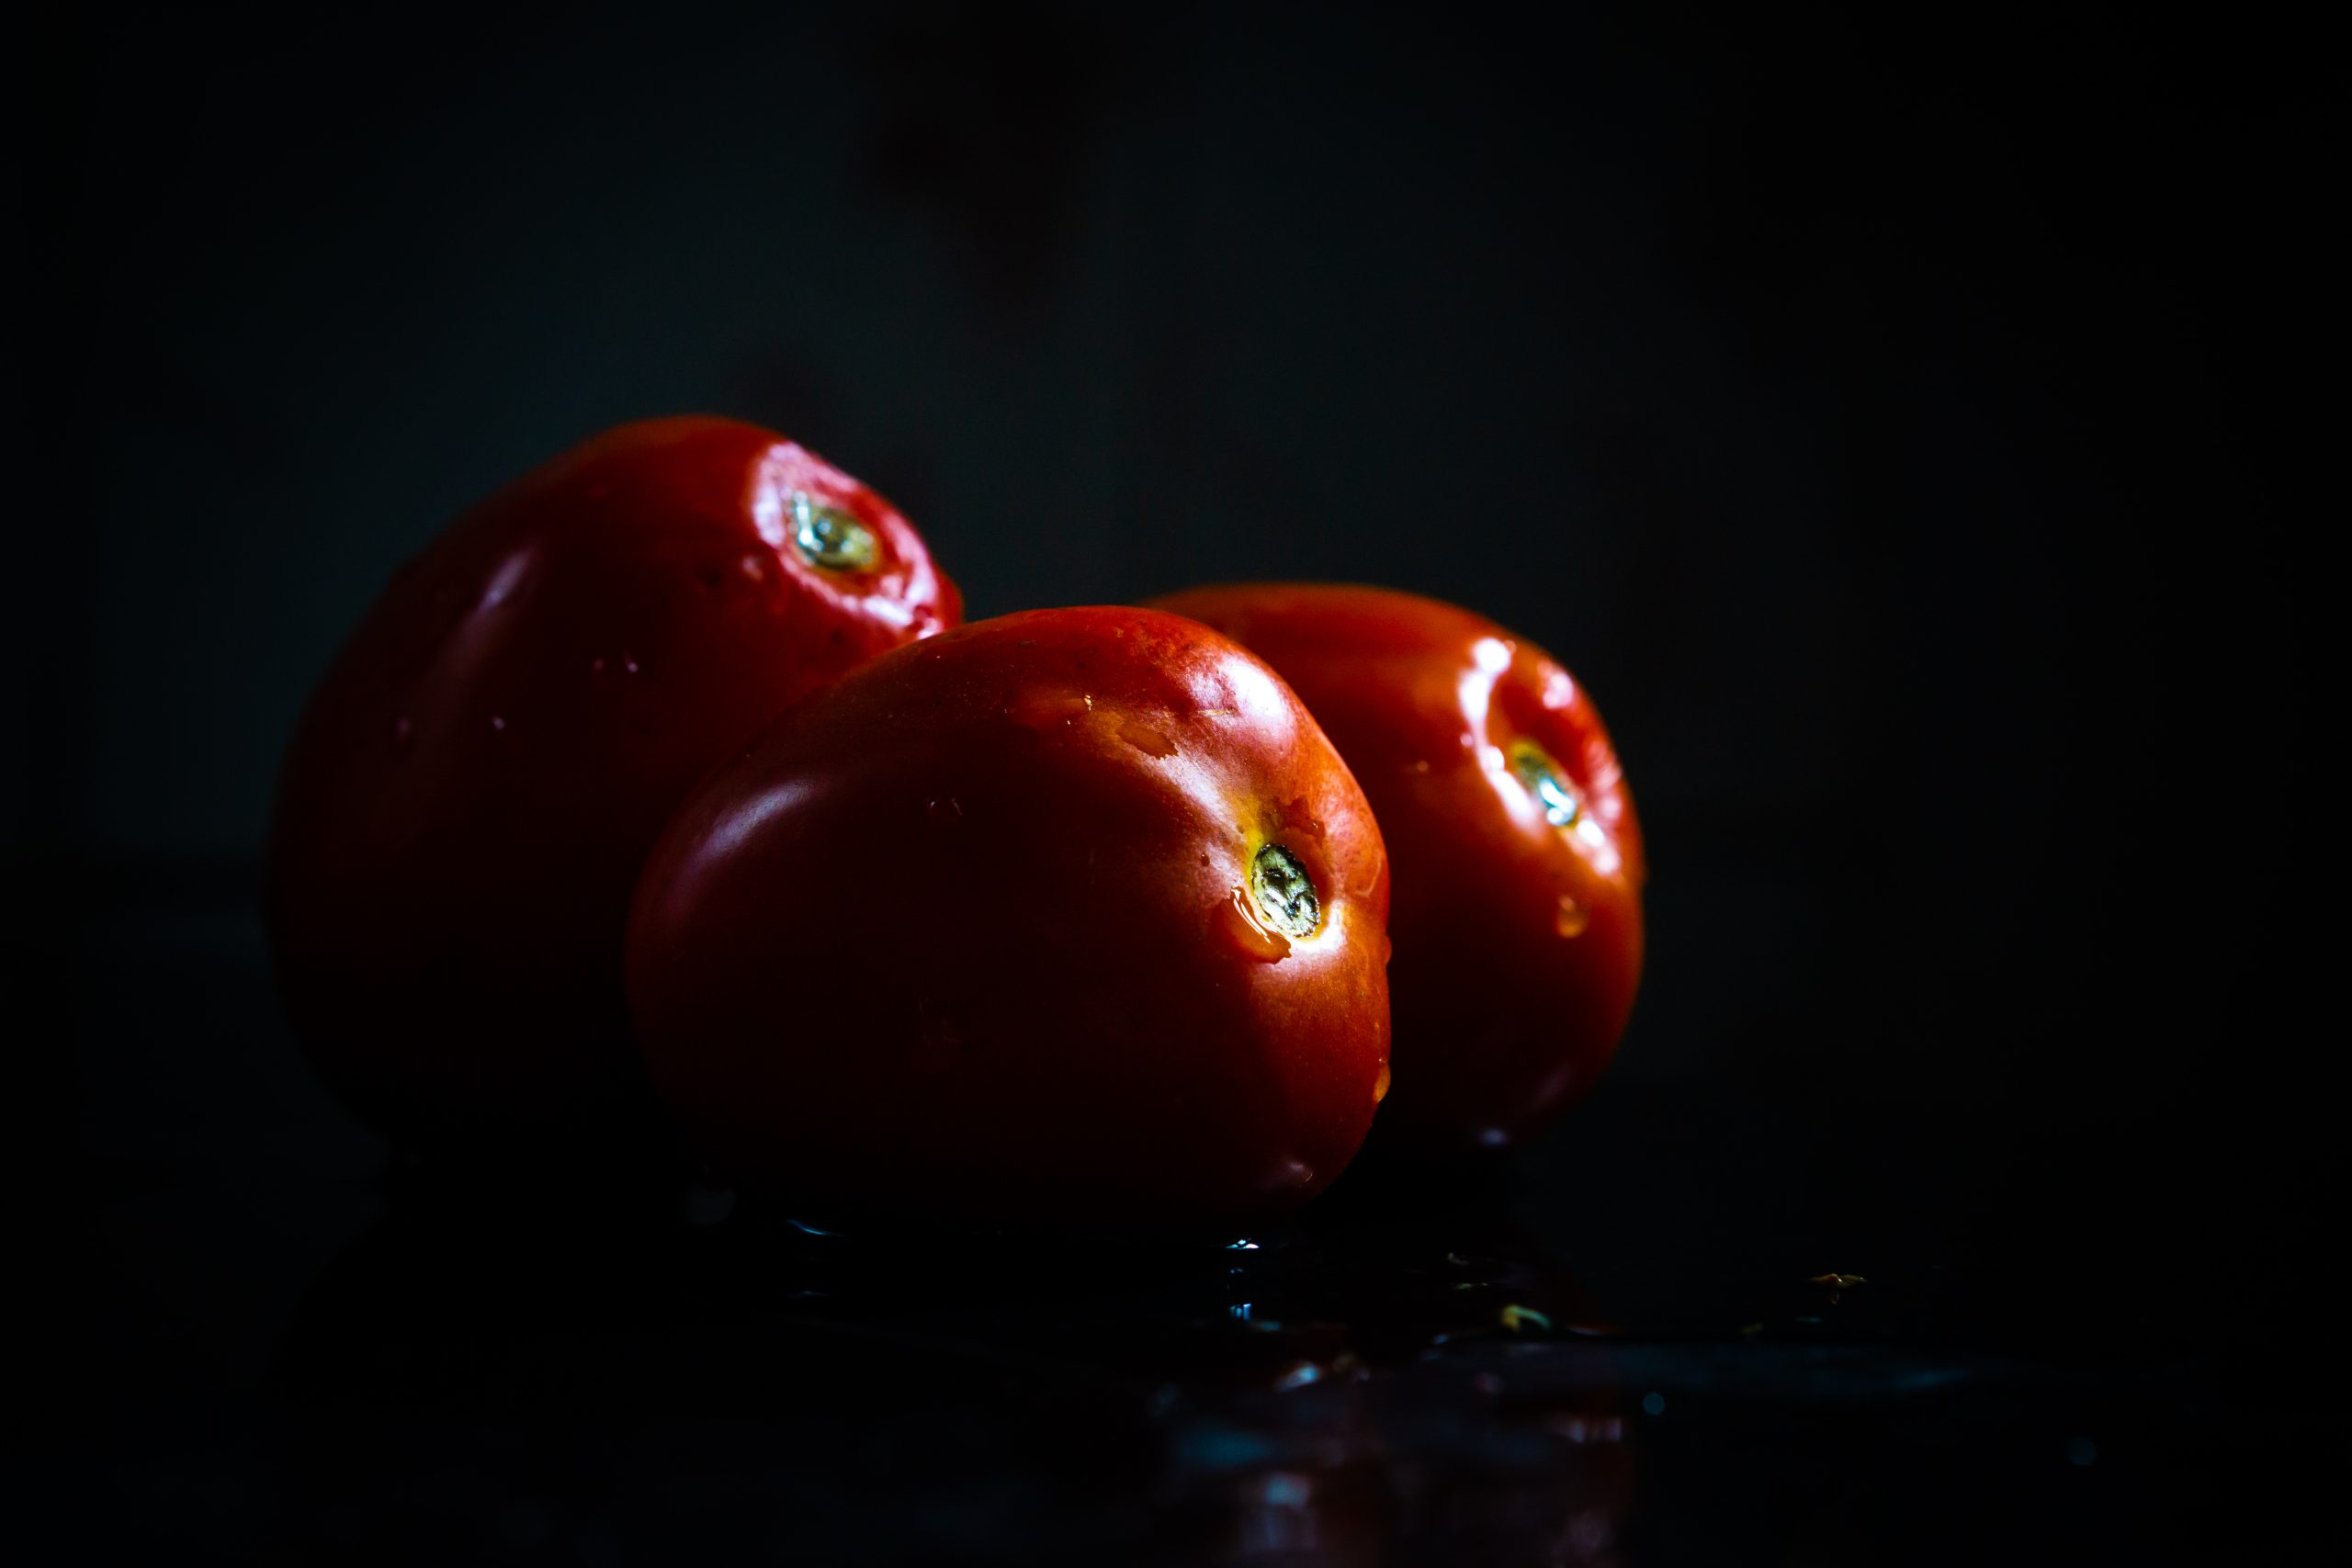 Fresh and washed tomatoes